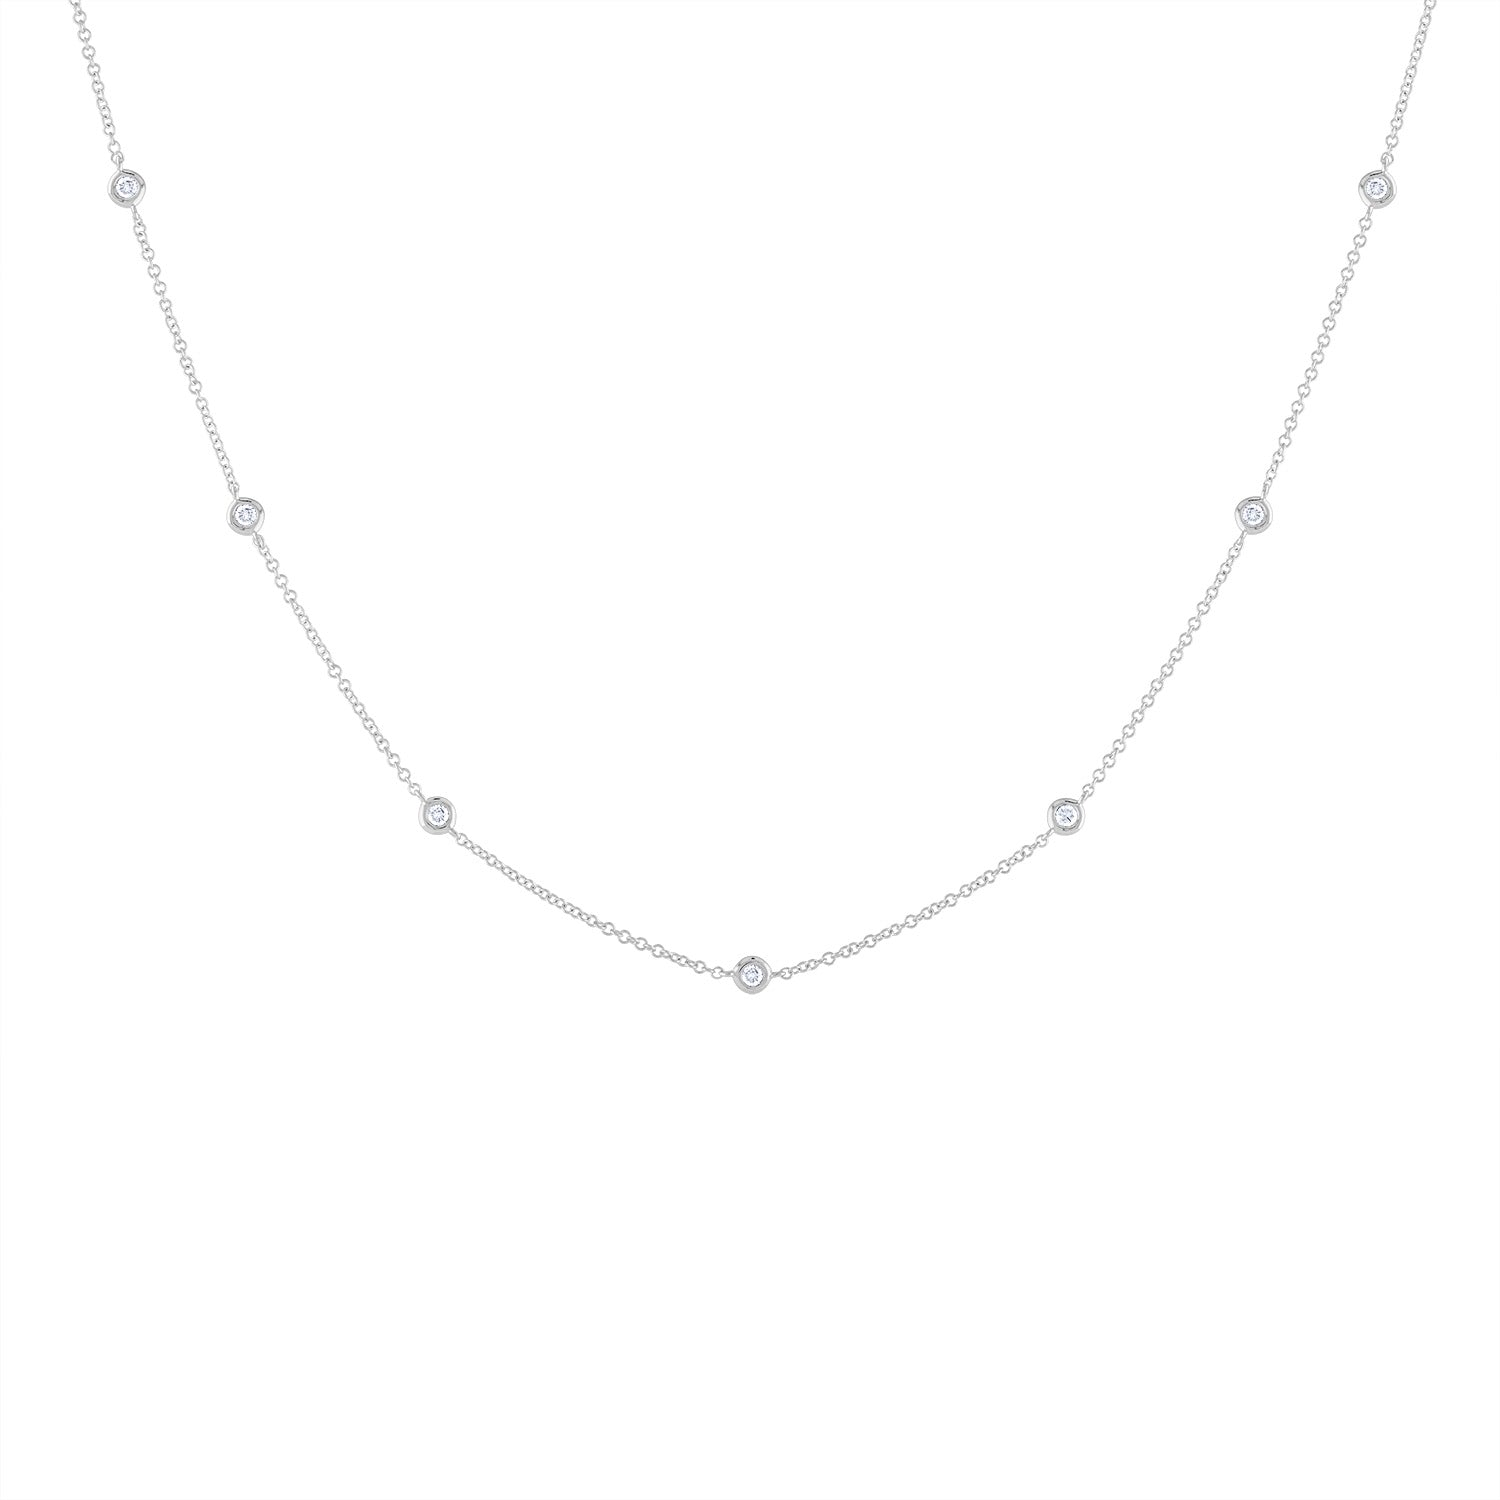 14k White Gold diamond bezel by the yard necklace